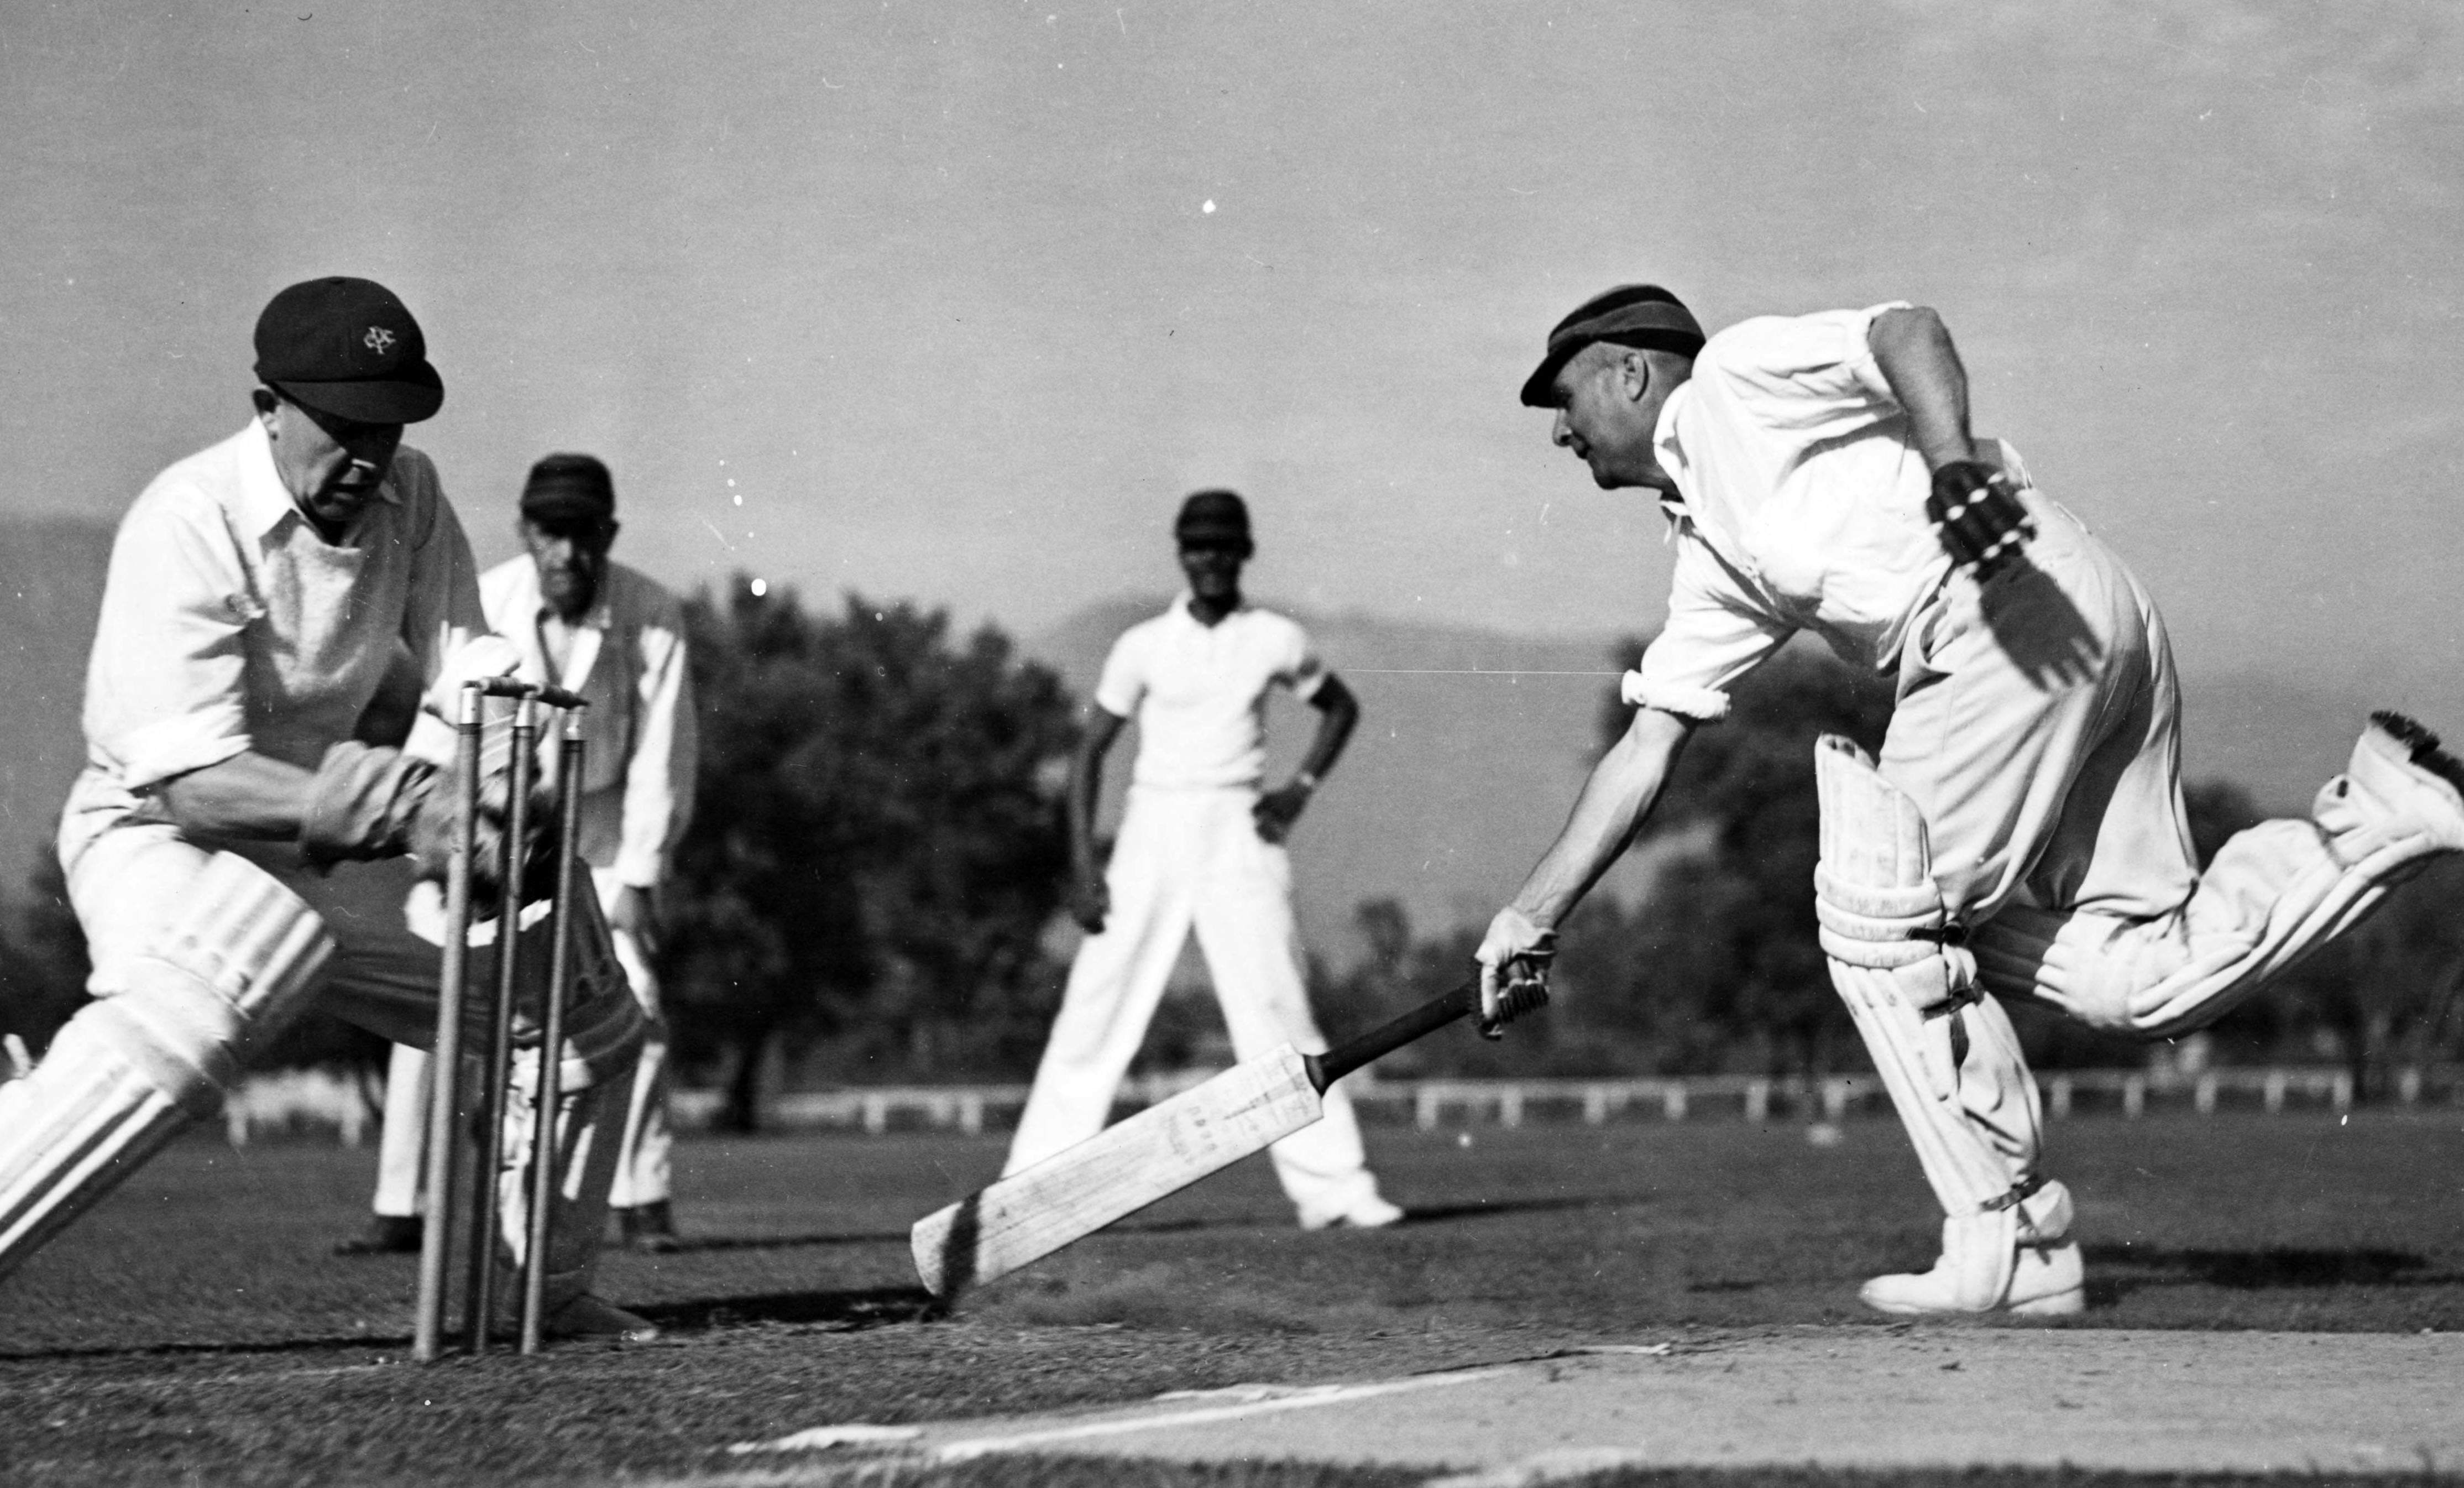 Cricket in Griffith Park, circa 1950